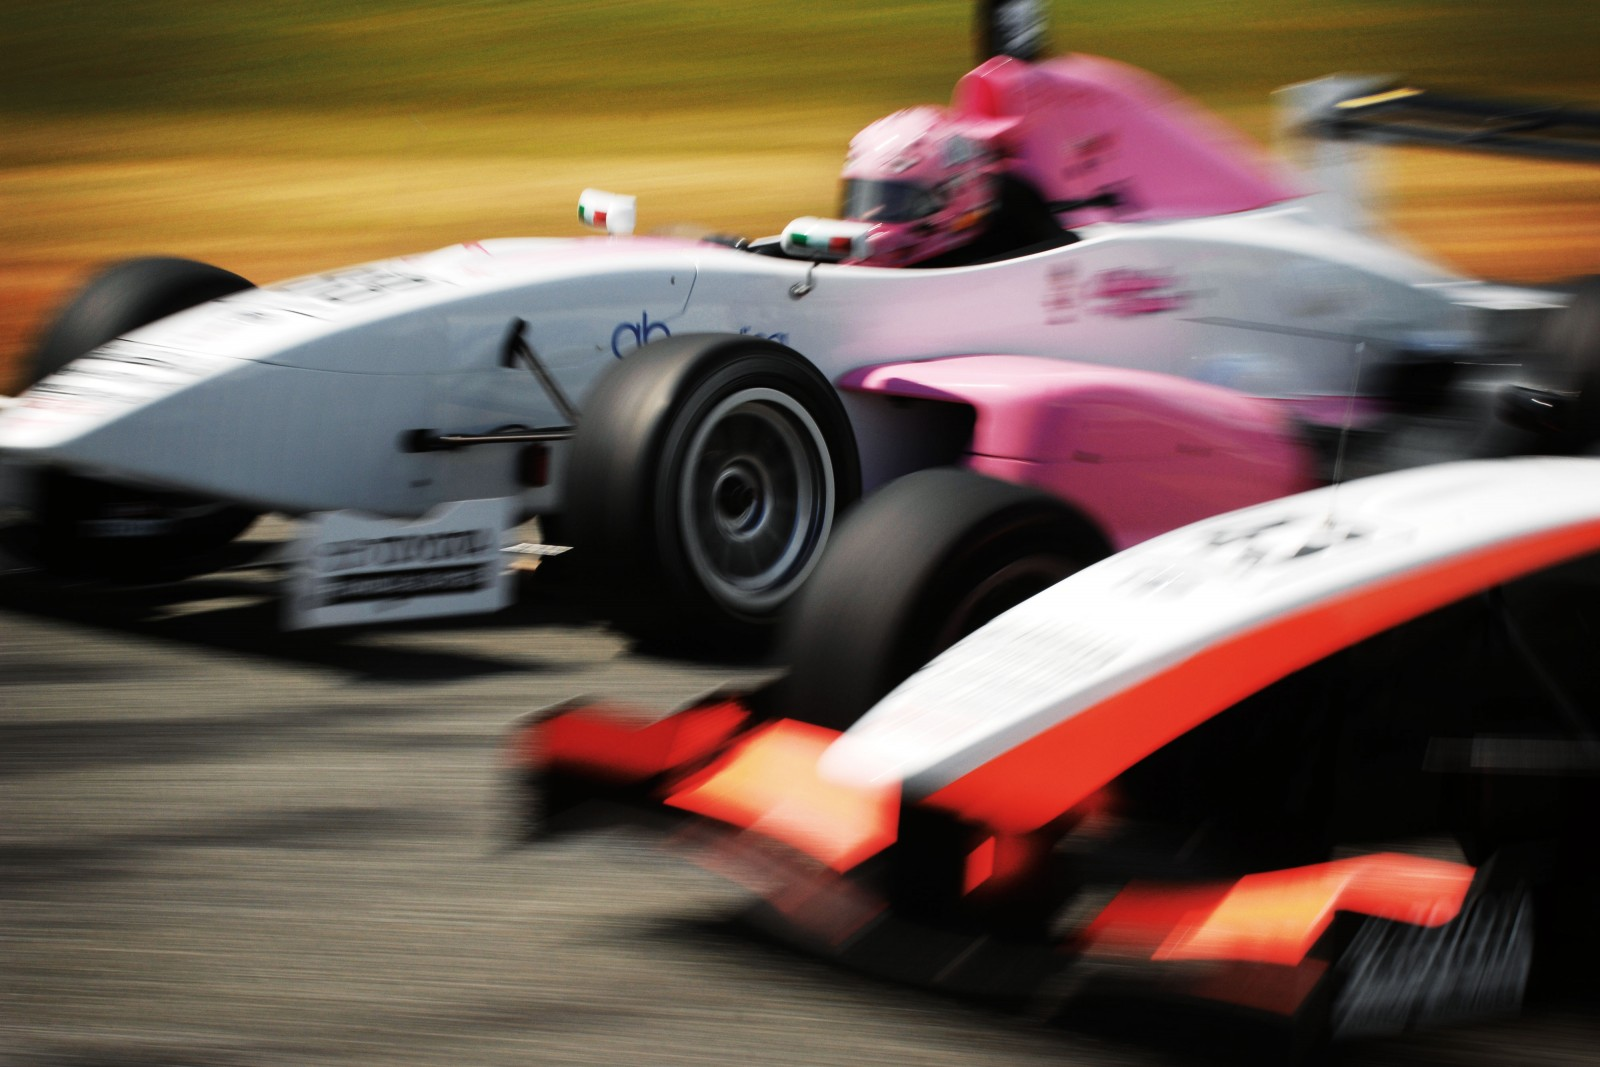 Teretaunga Park Raceway, Invercargill, is one of the most testing tracks on the Toyota Racing Series circuit, mainly due to the weather. But inclement New Zealand conditions are part of the draw for the young drivers in this school of hard knocks. Here driving the pink car, Italy's Michela Cerruti—the only female driver in the 2012 series—battles it out on the home straight with Tanart Sathienthirakul from Thailand.